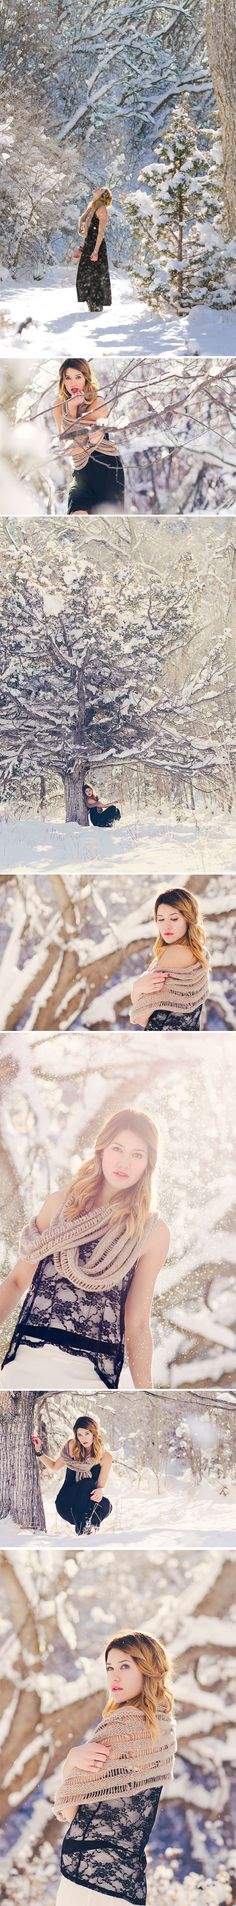 I love this. I get so stuck with posing when there's snow everywhere, but this provided some great ideas to start with.